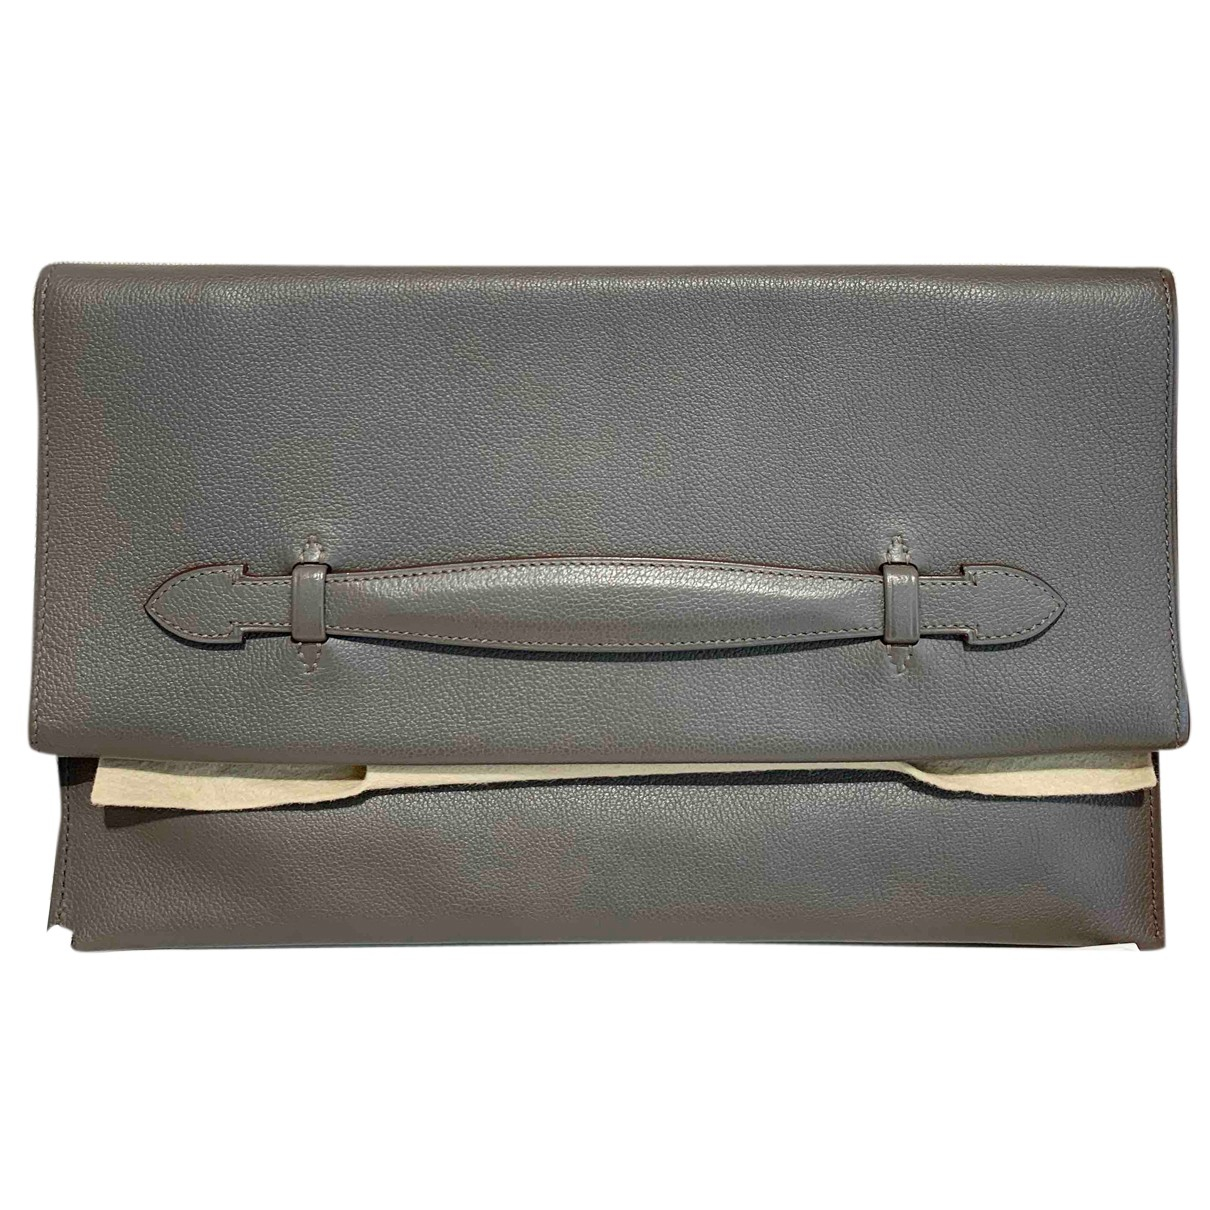 Hermes \N Clutch in  Beige Leder